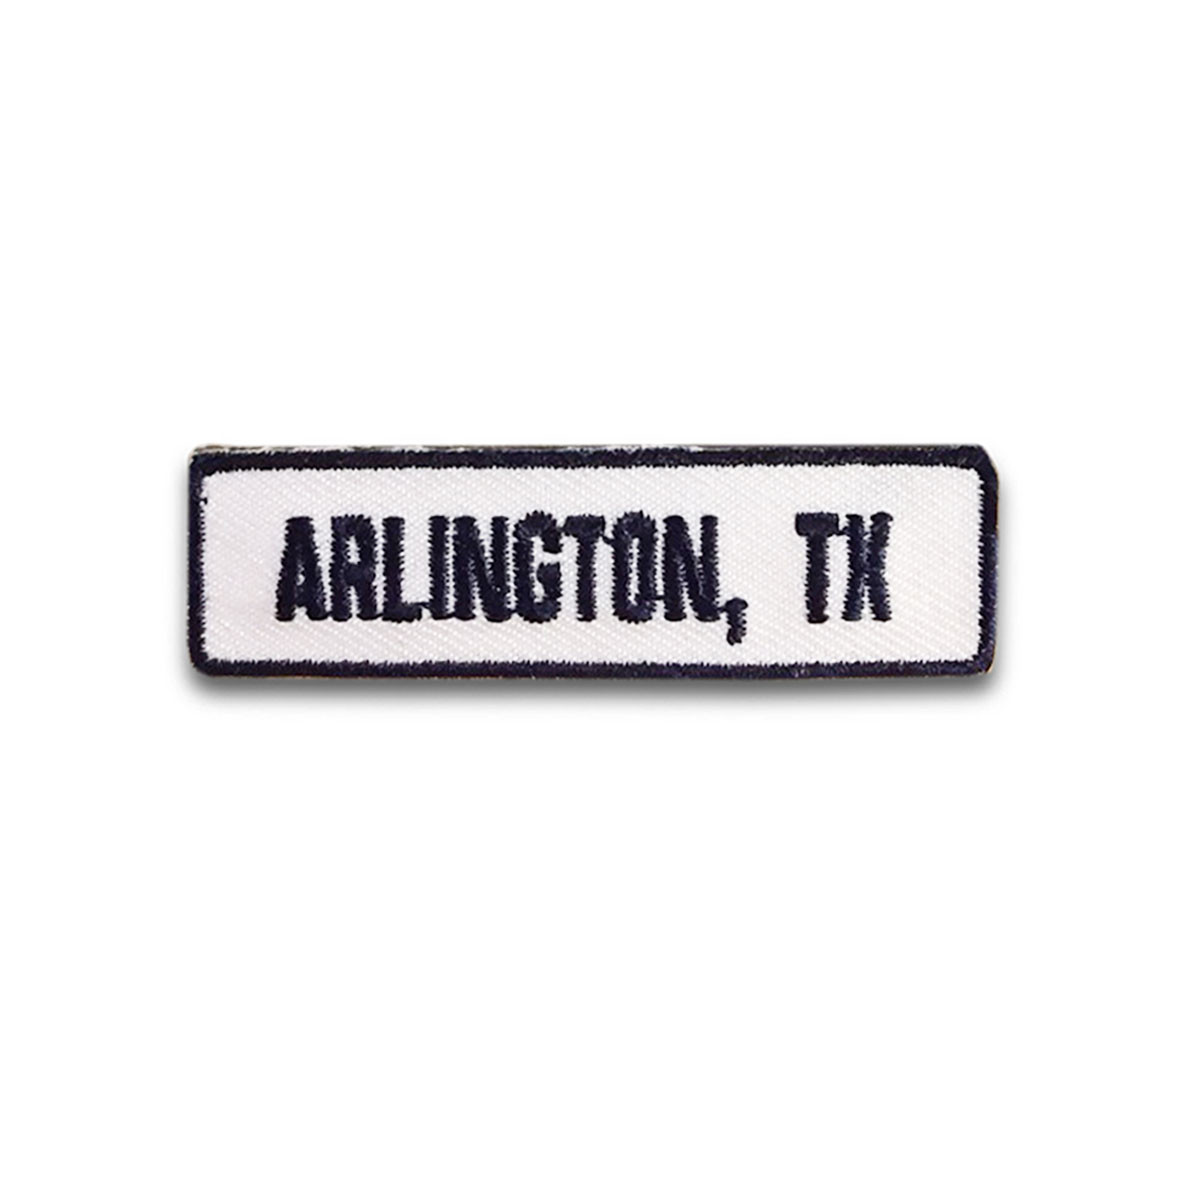 Arlington, TX Rocker Patch